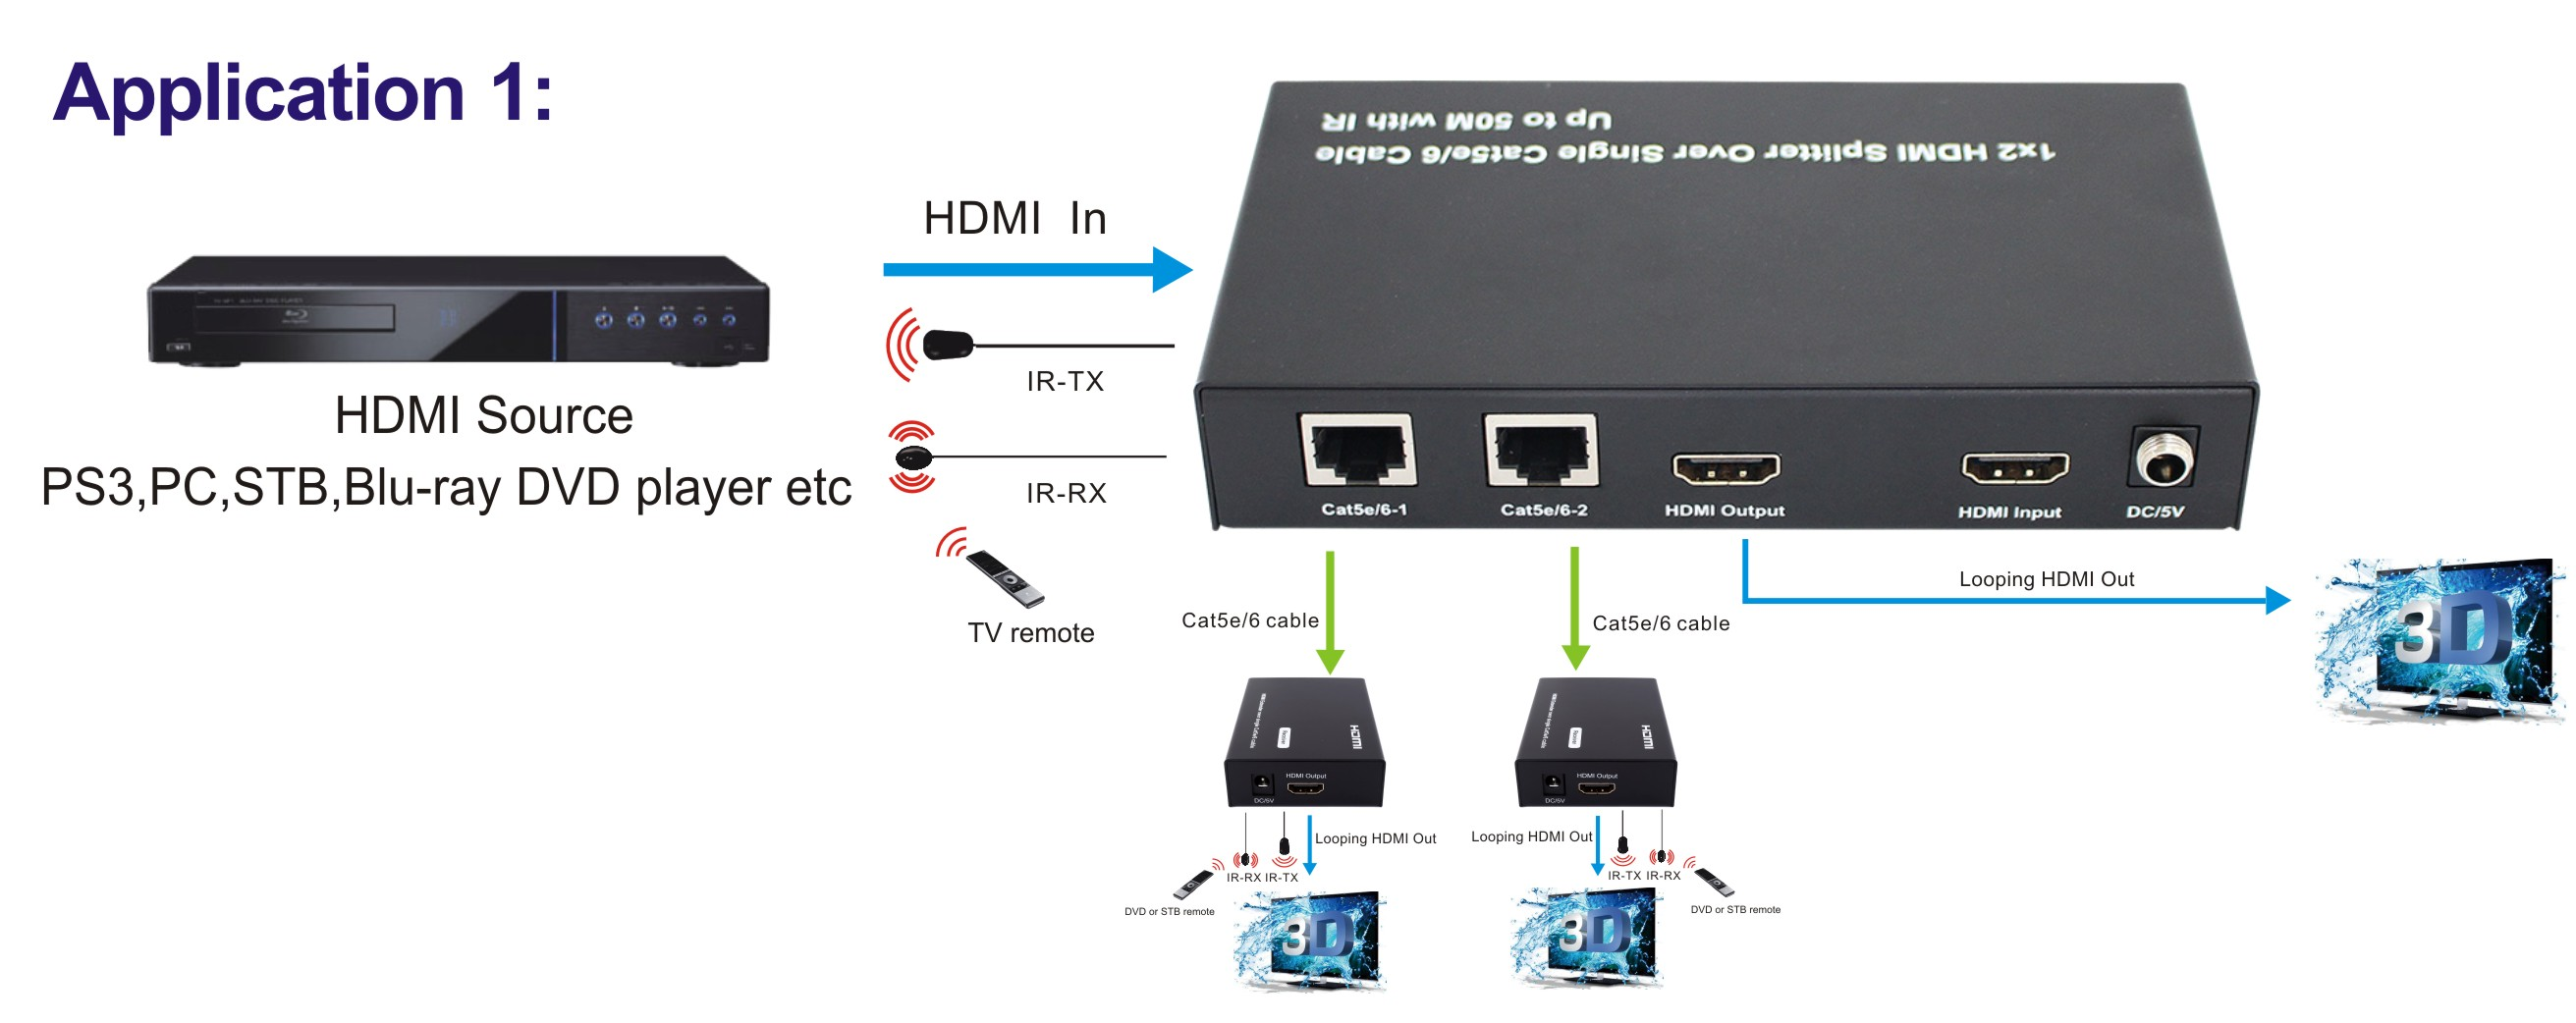 h4spc5l 4 way hdmi loop 50m over cat5 splitter cable tv splitter diagram